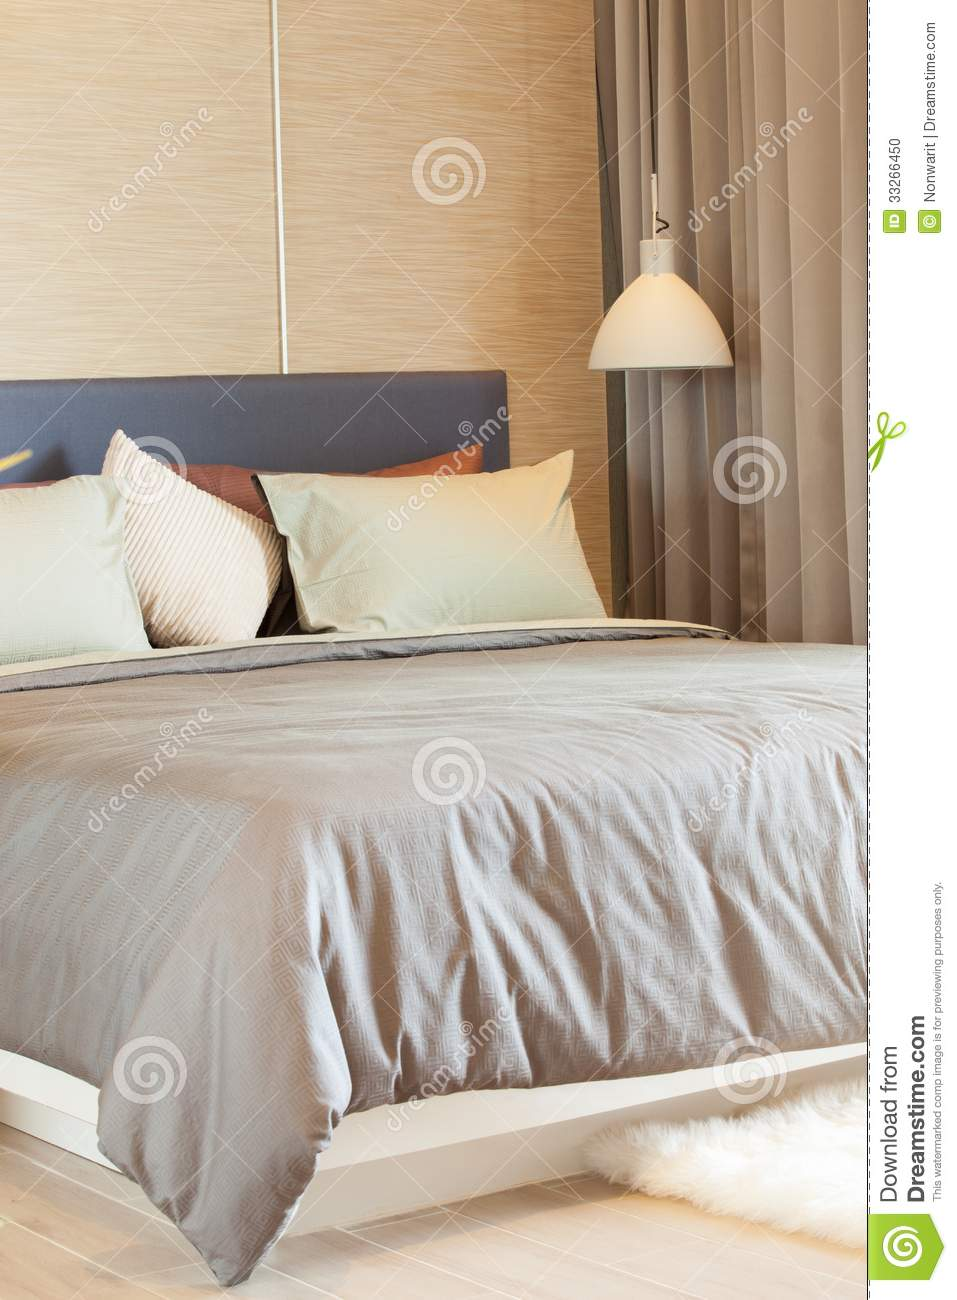 Modern Bedroom Pillows : Luxury Modern Style Bedroom Stock Photo - Image: 33266450